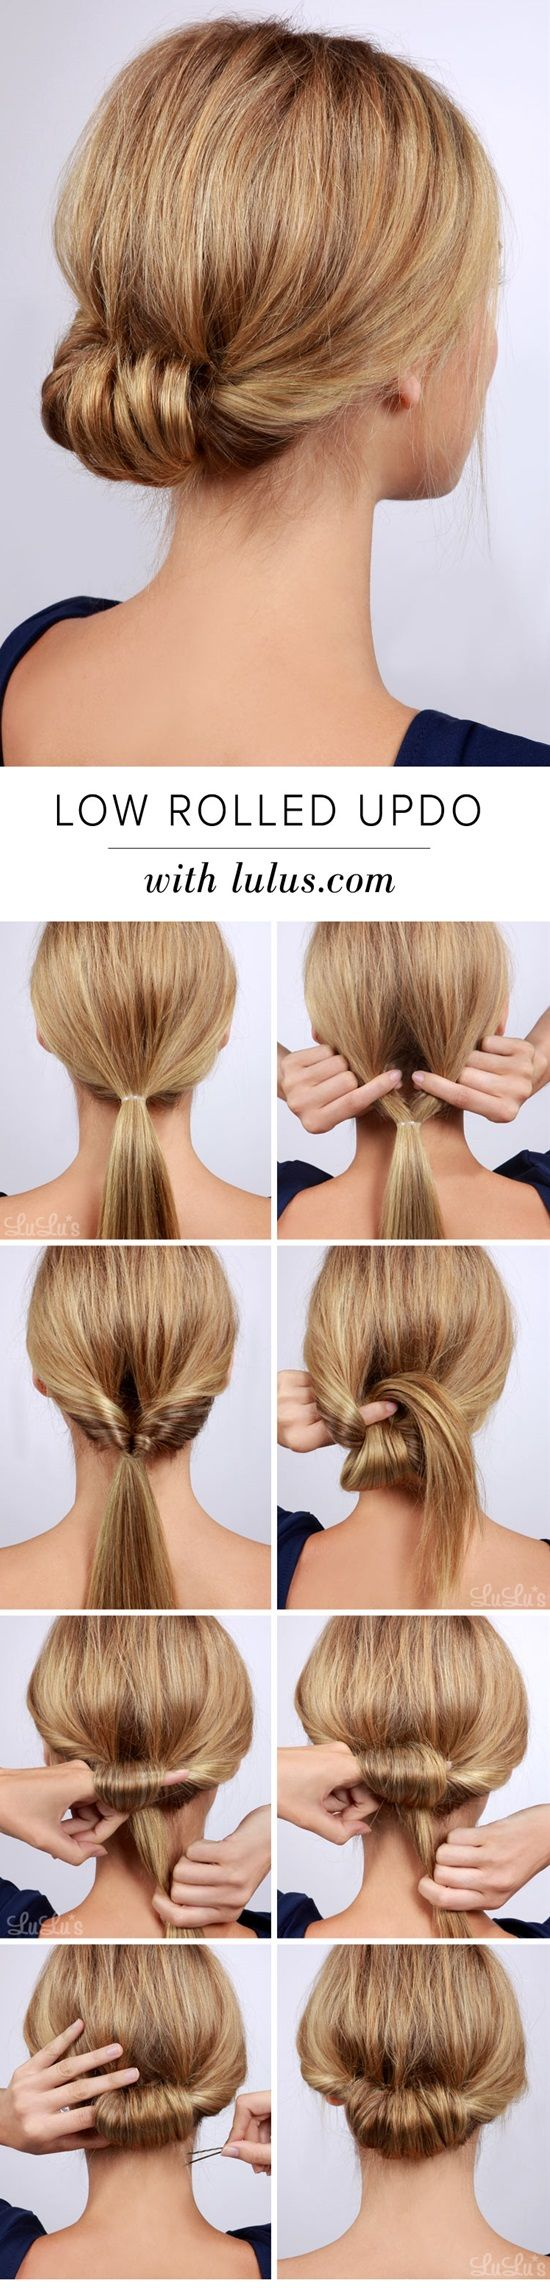 14 Bold Unique Hairstyle Tutorials You Can Do At Home Long Hair Updo Wedding Hairstyles For Long Hair Hair Tutorial